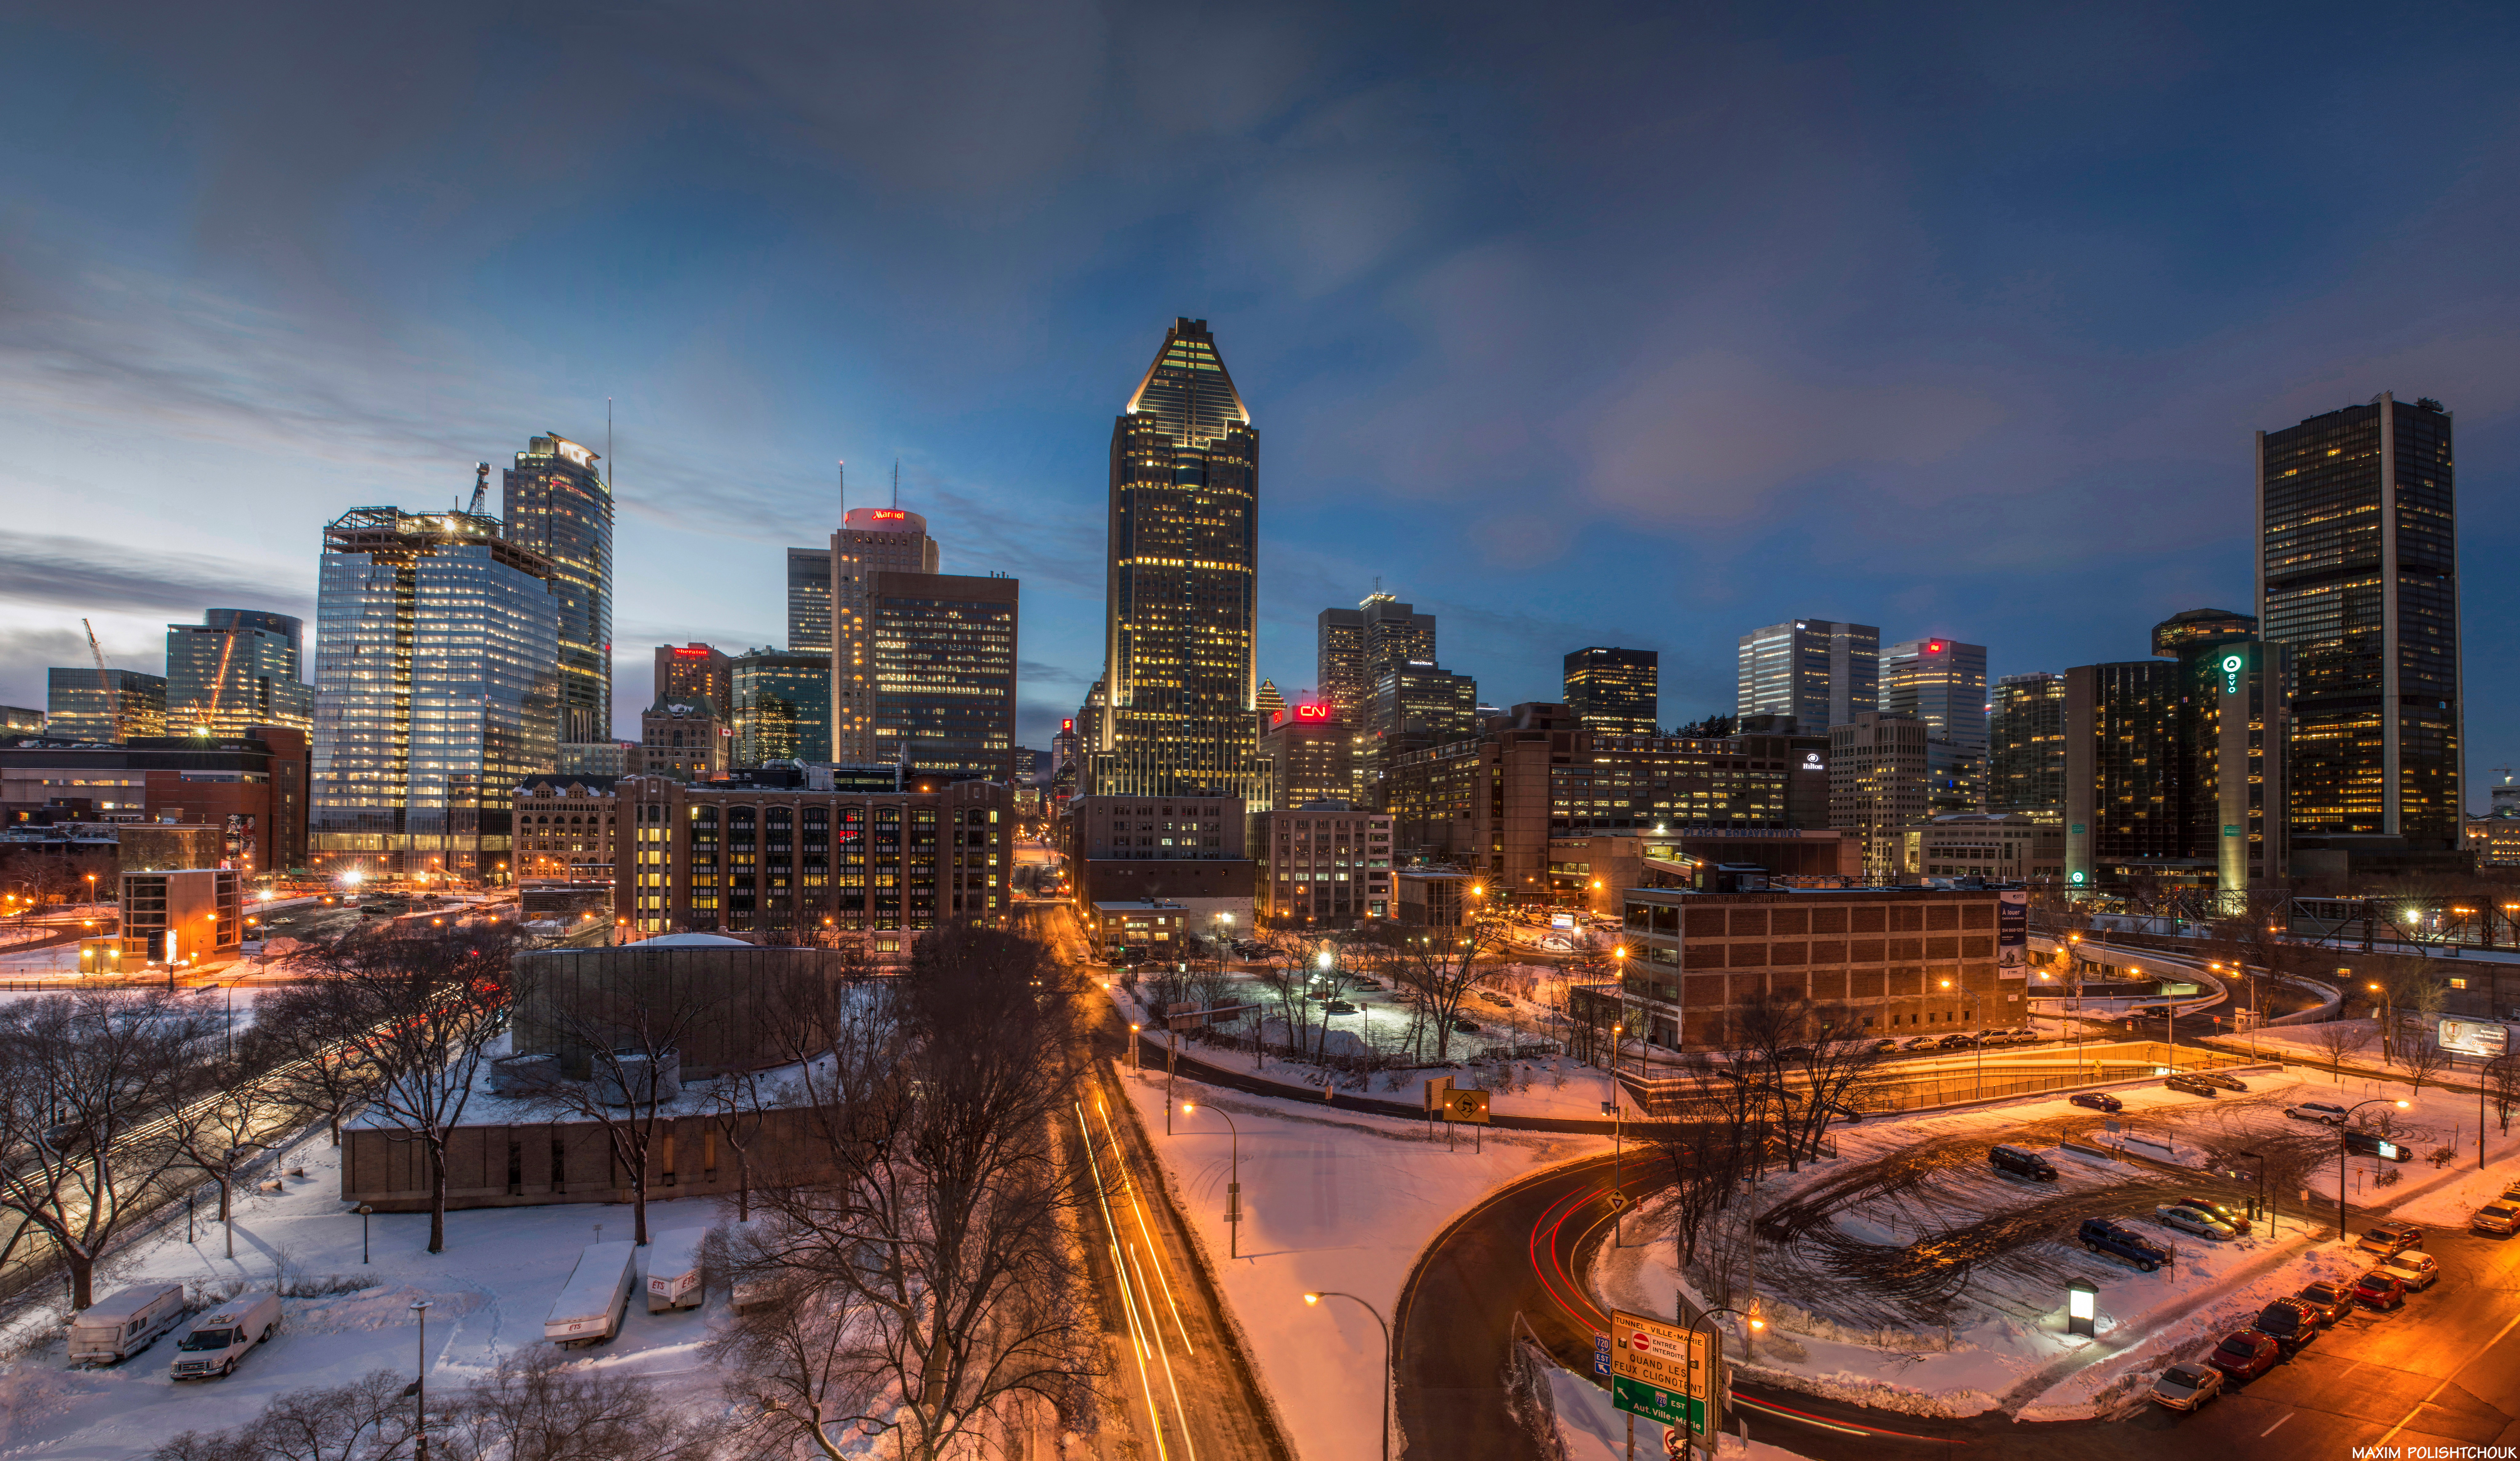 Quebec Montreal Night Time Cityscape With Lights In Montreal Quebec Canada Image